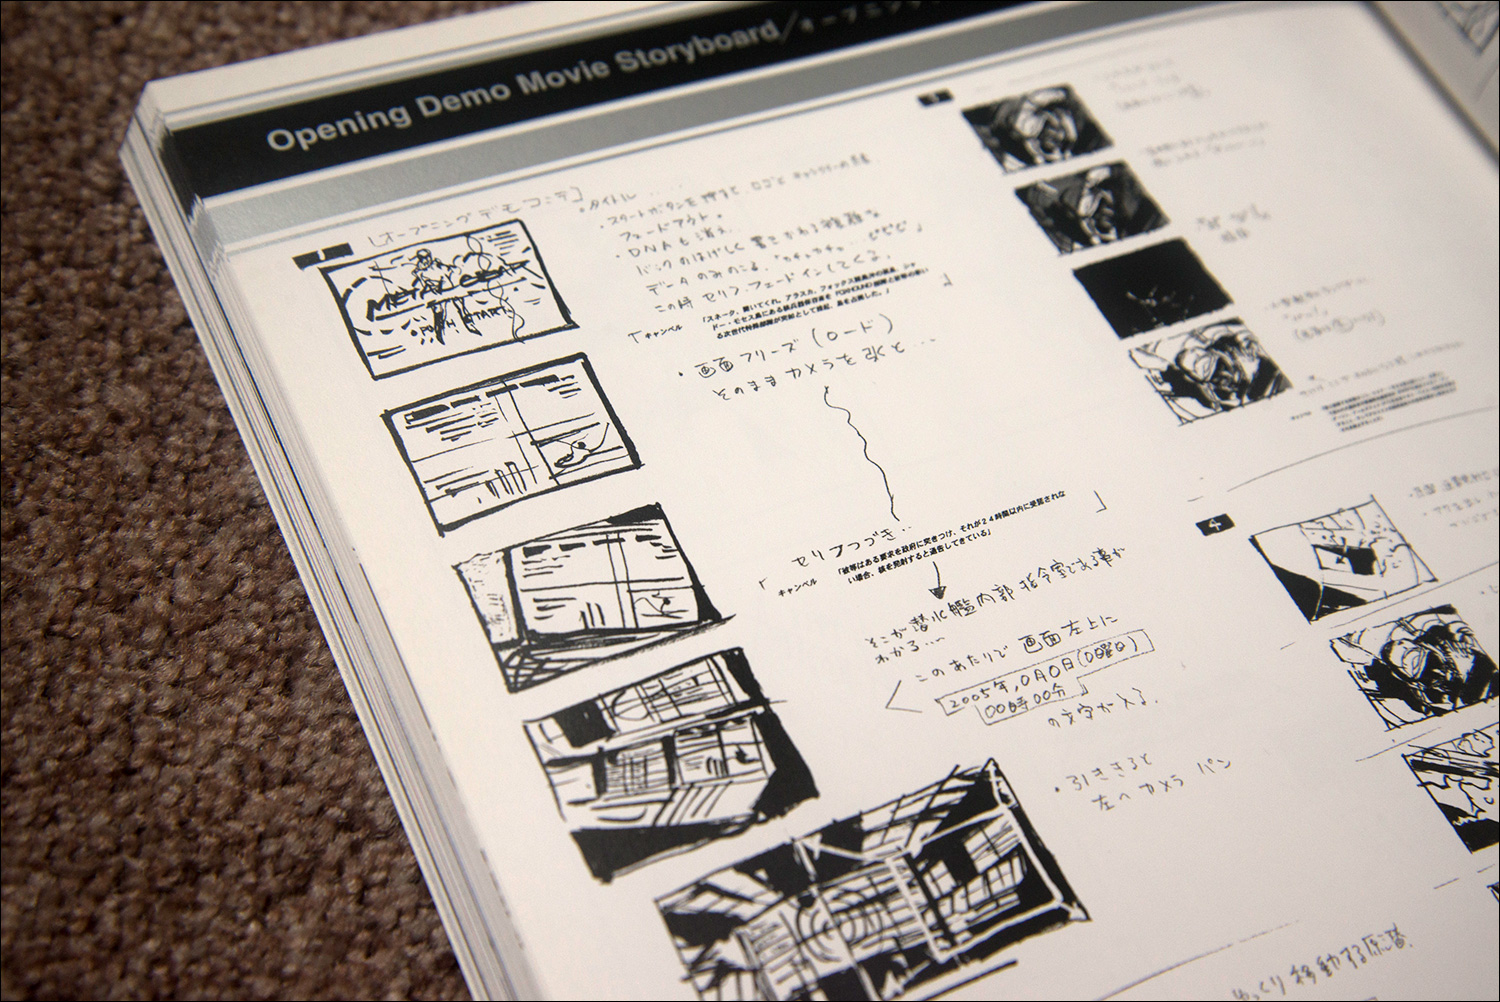 The-Art-of-Metal-Gear-Solid-Storyboard